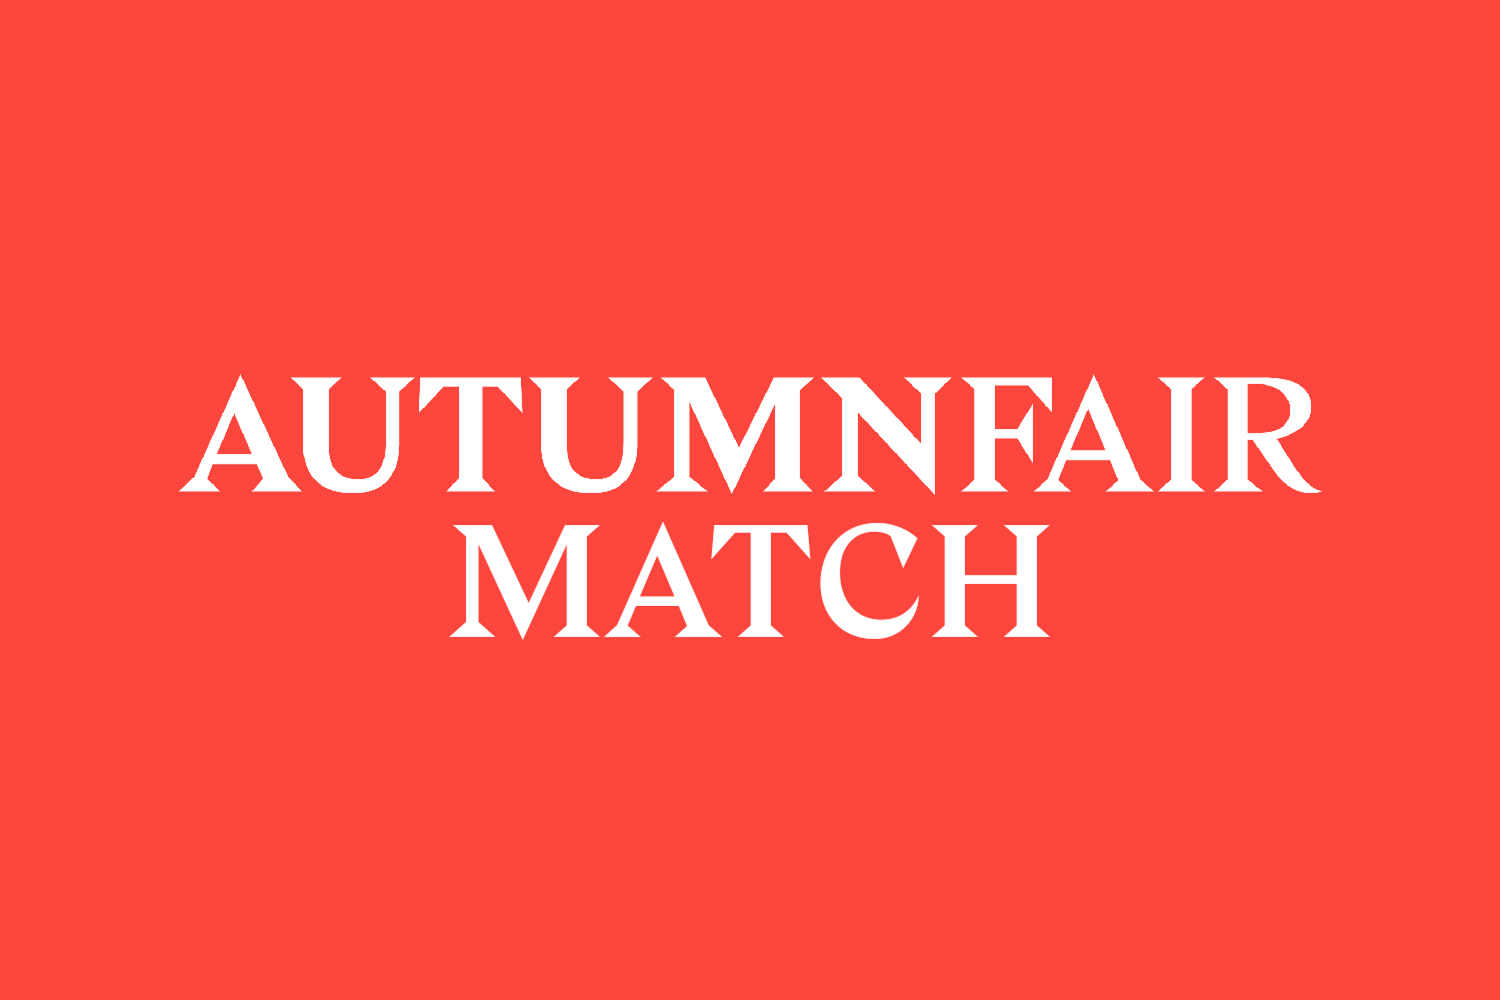 autumn fair match